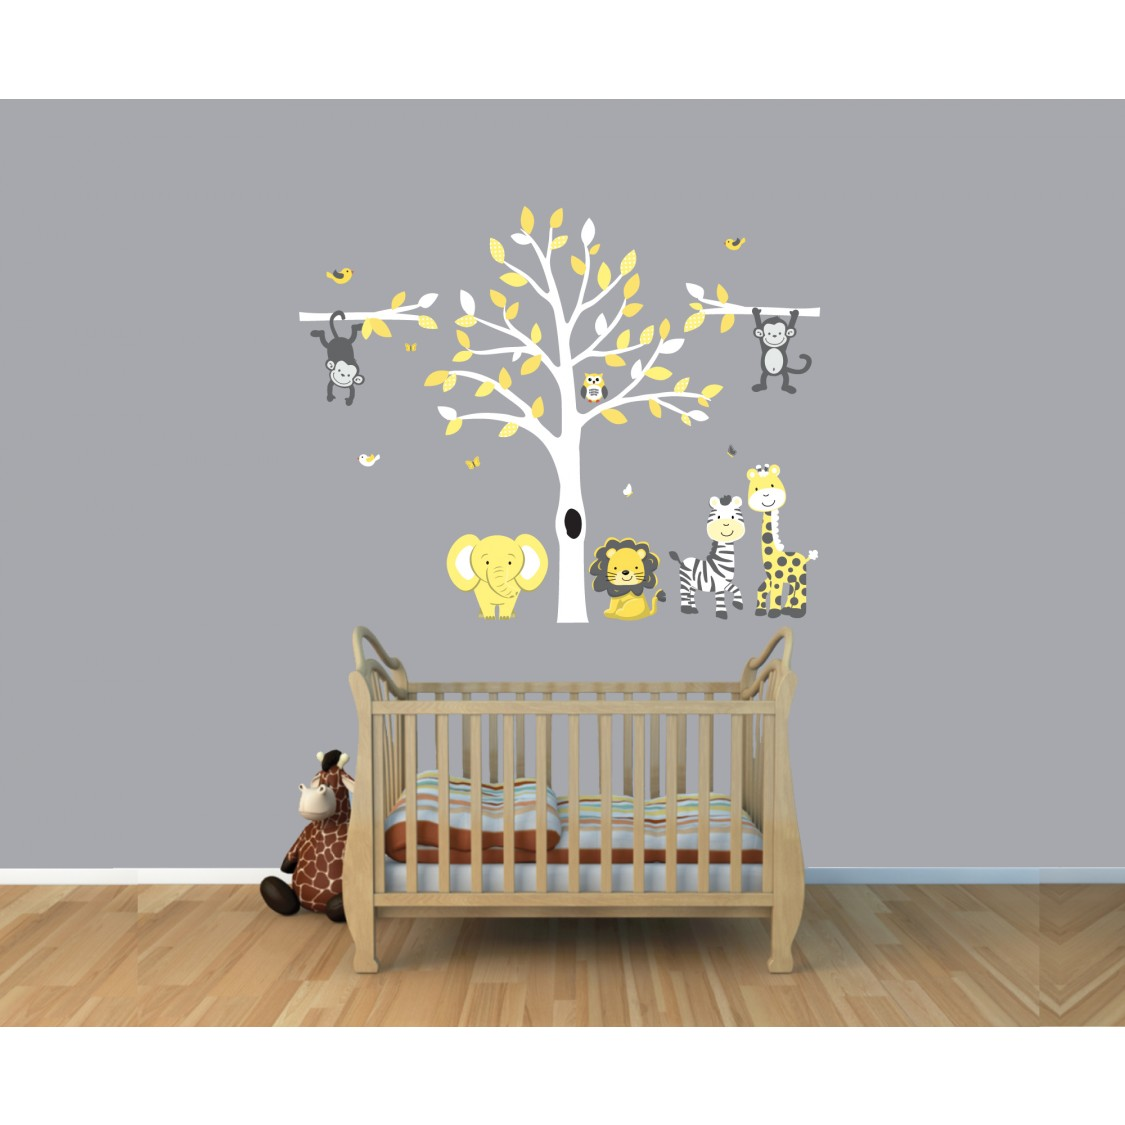 Yellow Amp Gray Jungle Tree Wall Decal With Monkey Wall